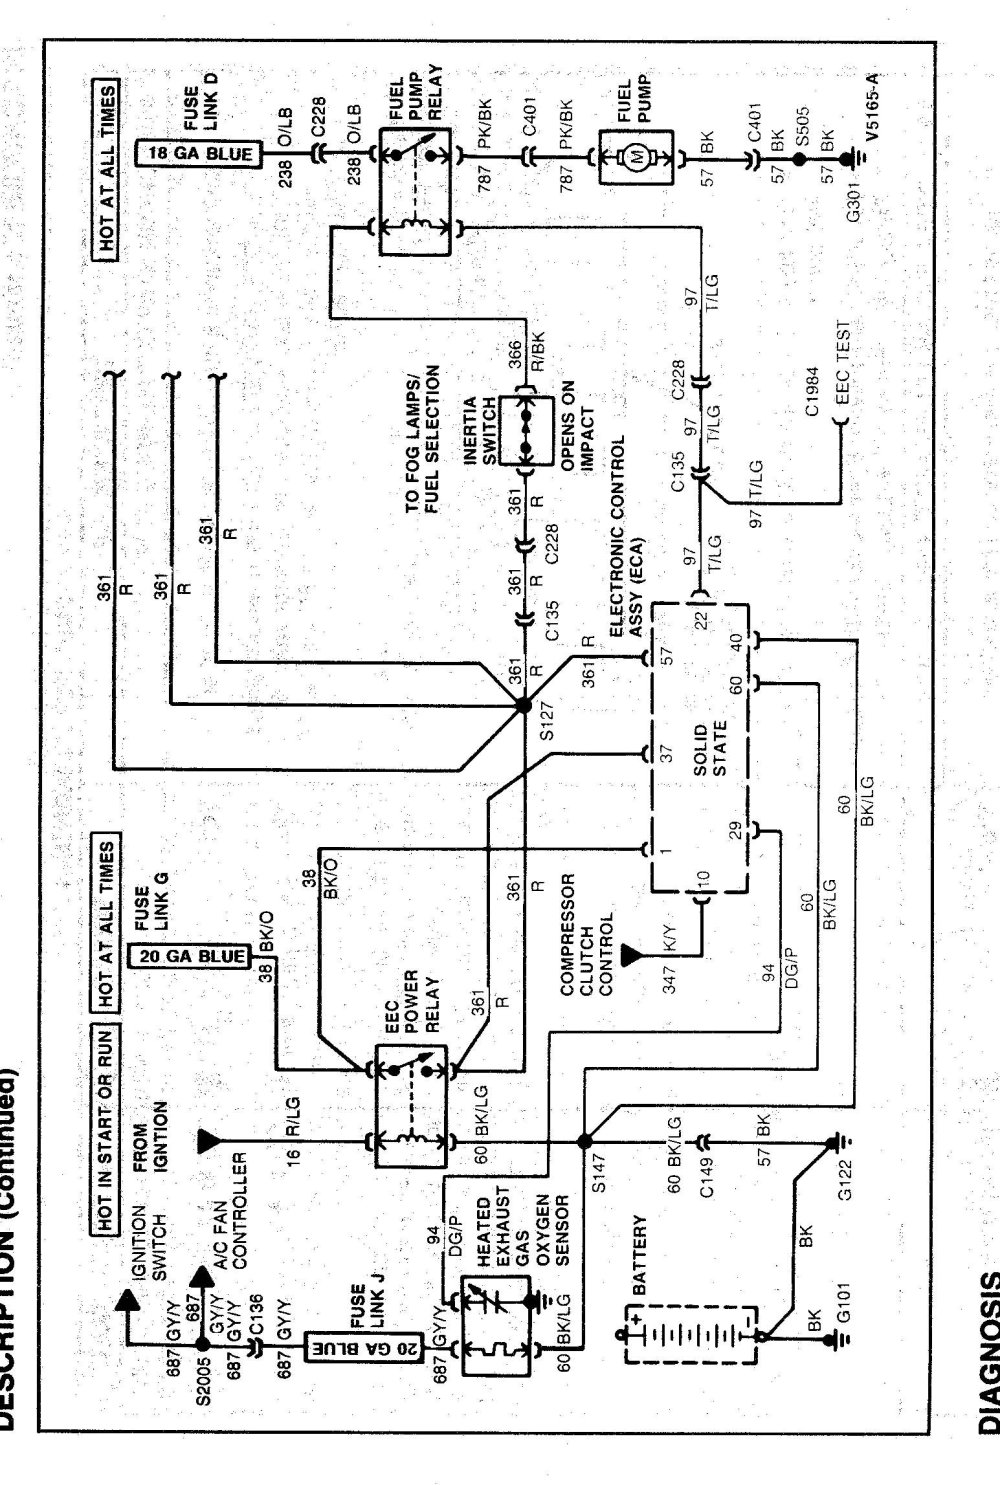 medium resolution of 1998 mustang fuel pump routenew mx tl mustang fuel pump wiring diagram additionally toyota 4runner fuel